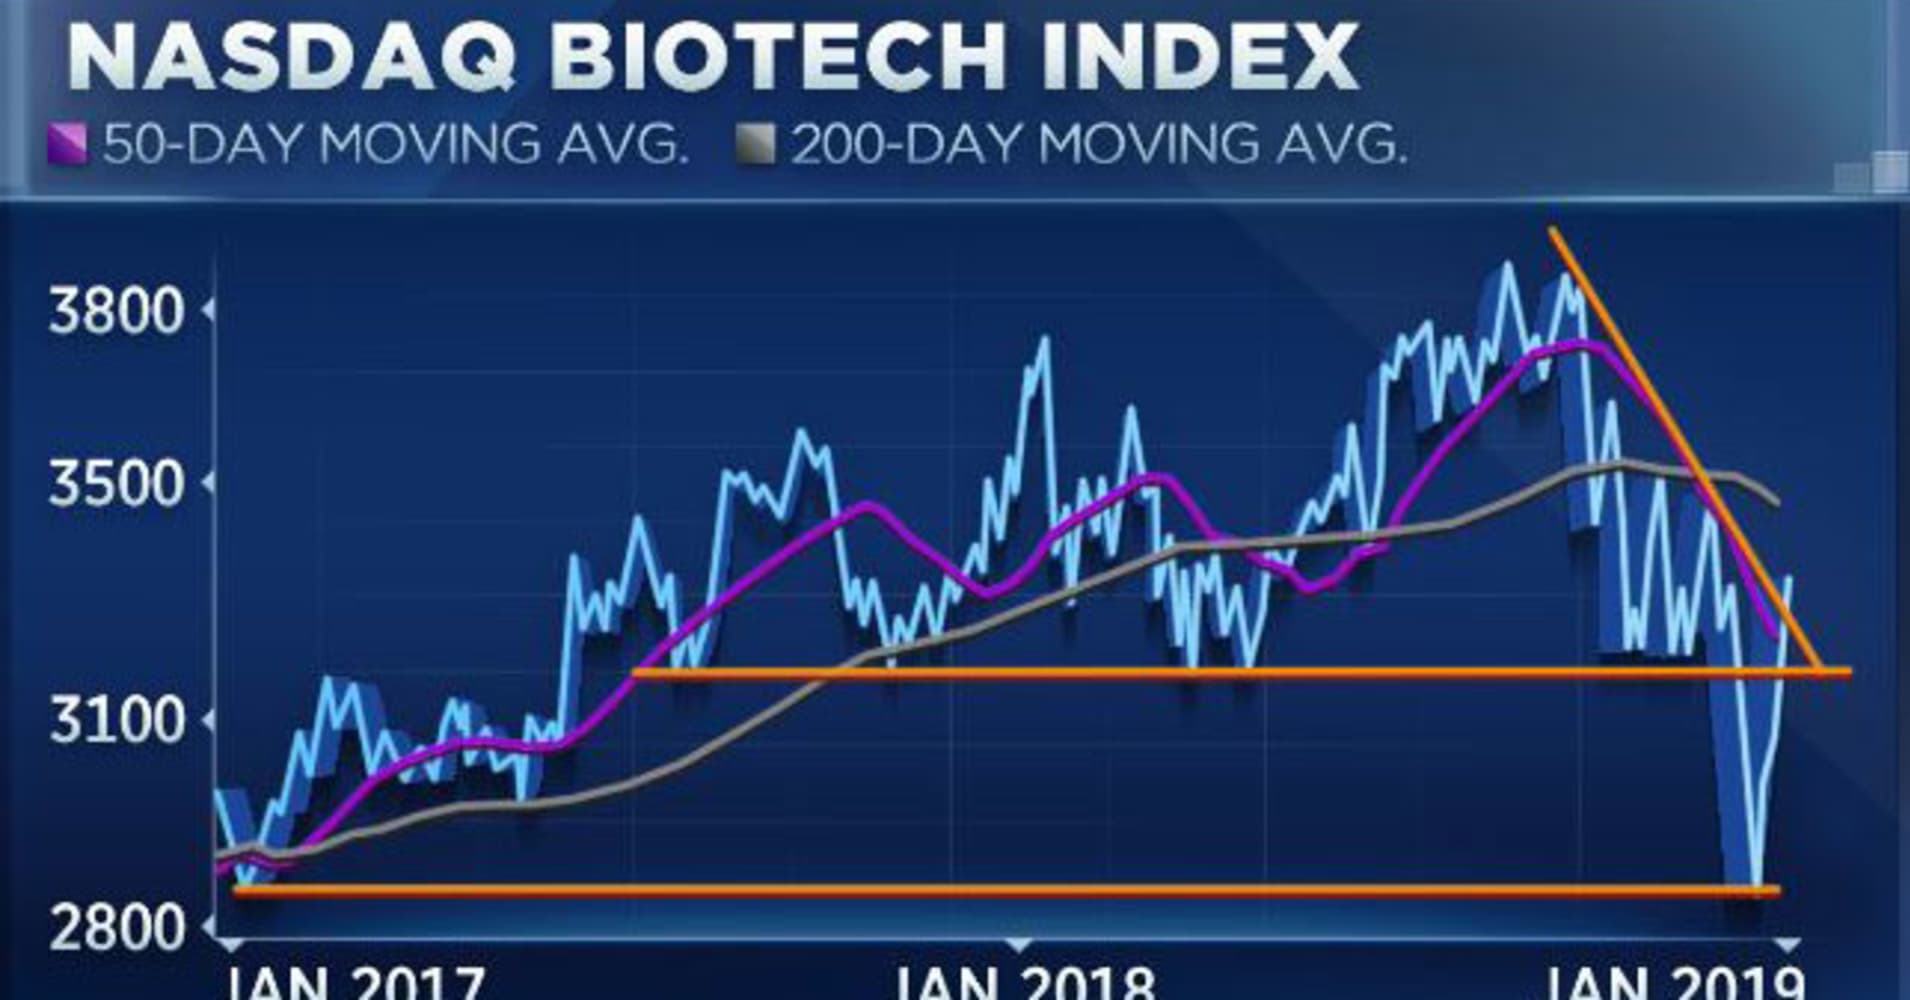 Biotech's breaking out, and here's why some market experts think an even bigger rally is ahead